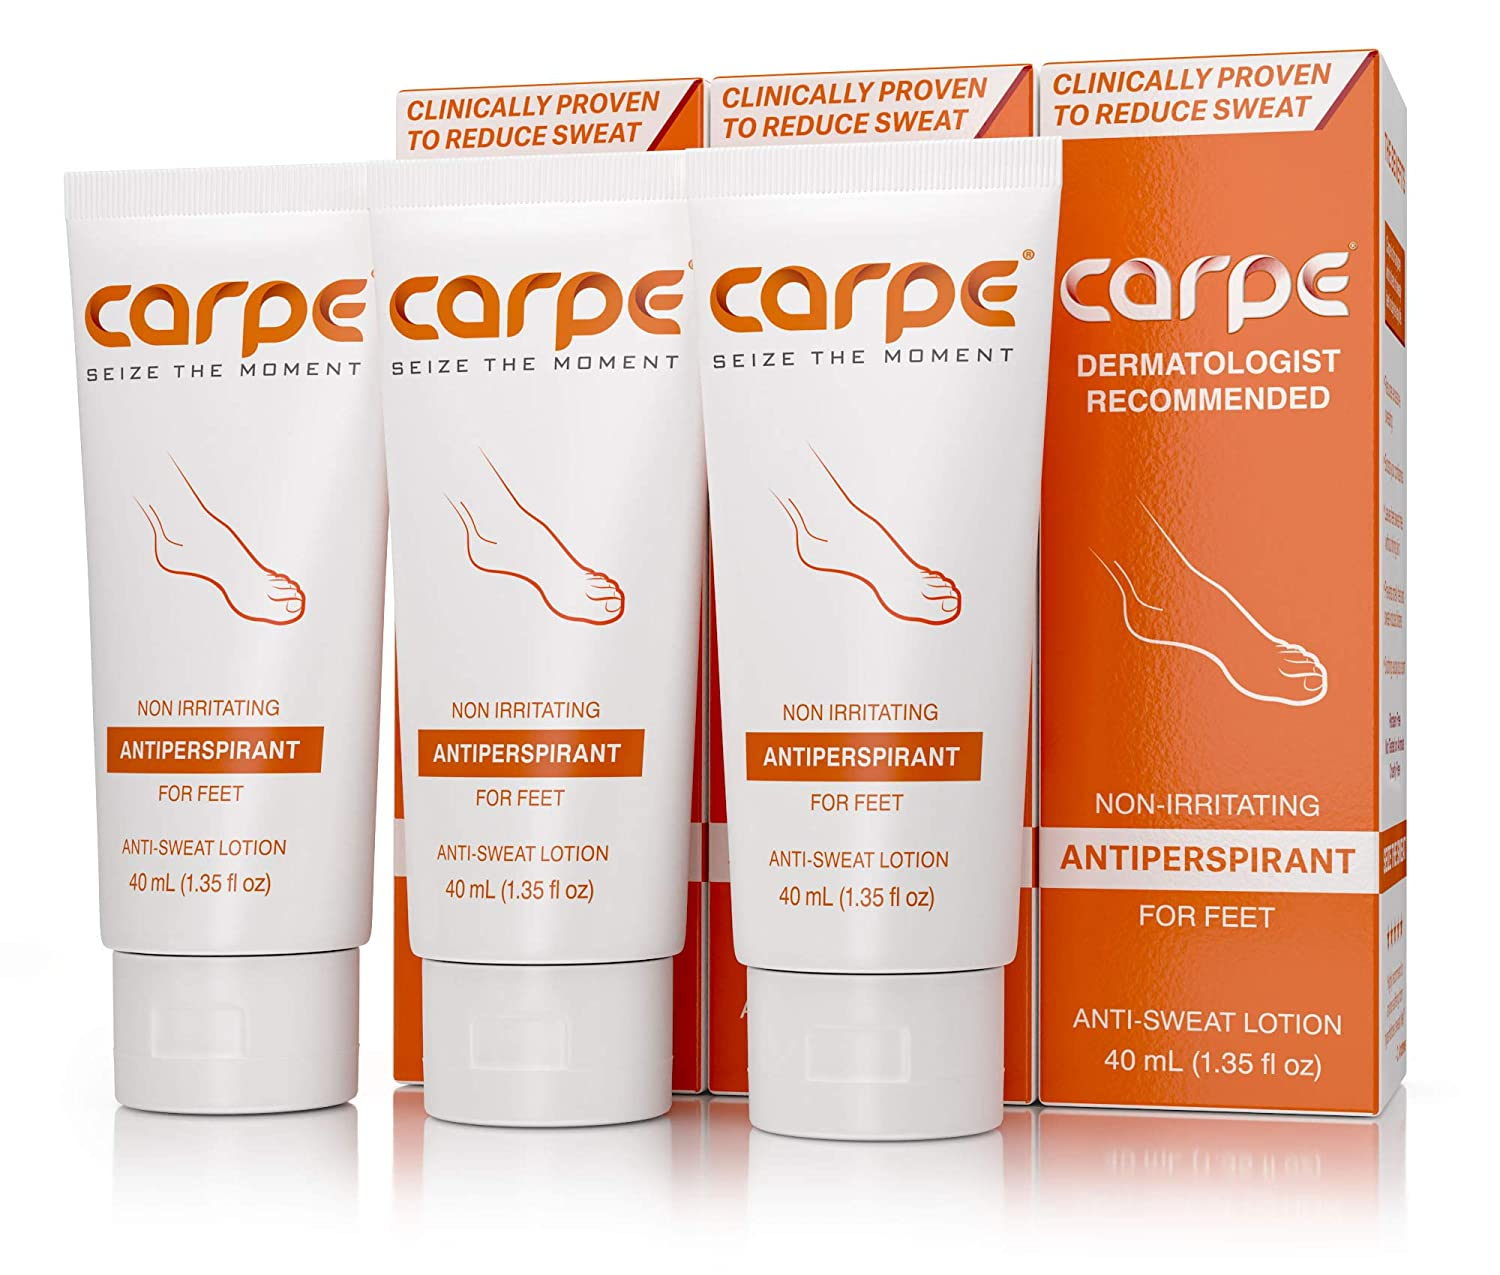 Carpe Antiperspirant Foot Lotion Package Deal (3 Foot Tubes-Save 22%), Stop Sweaty, Smelly Feet, Help Prevent Blisters, Dermatologist-Recommended